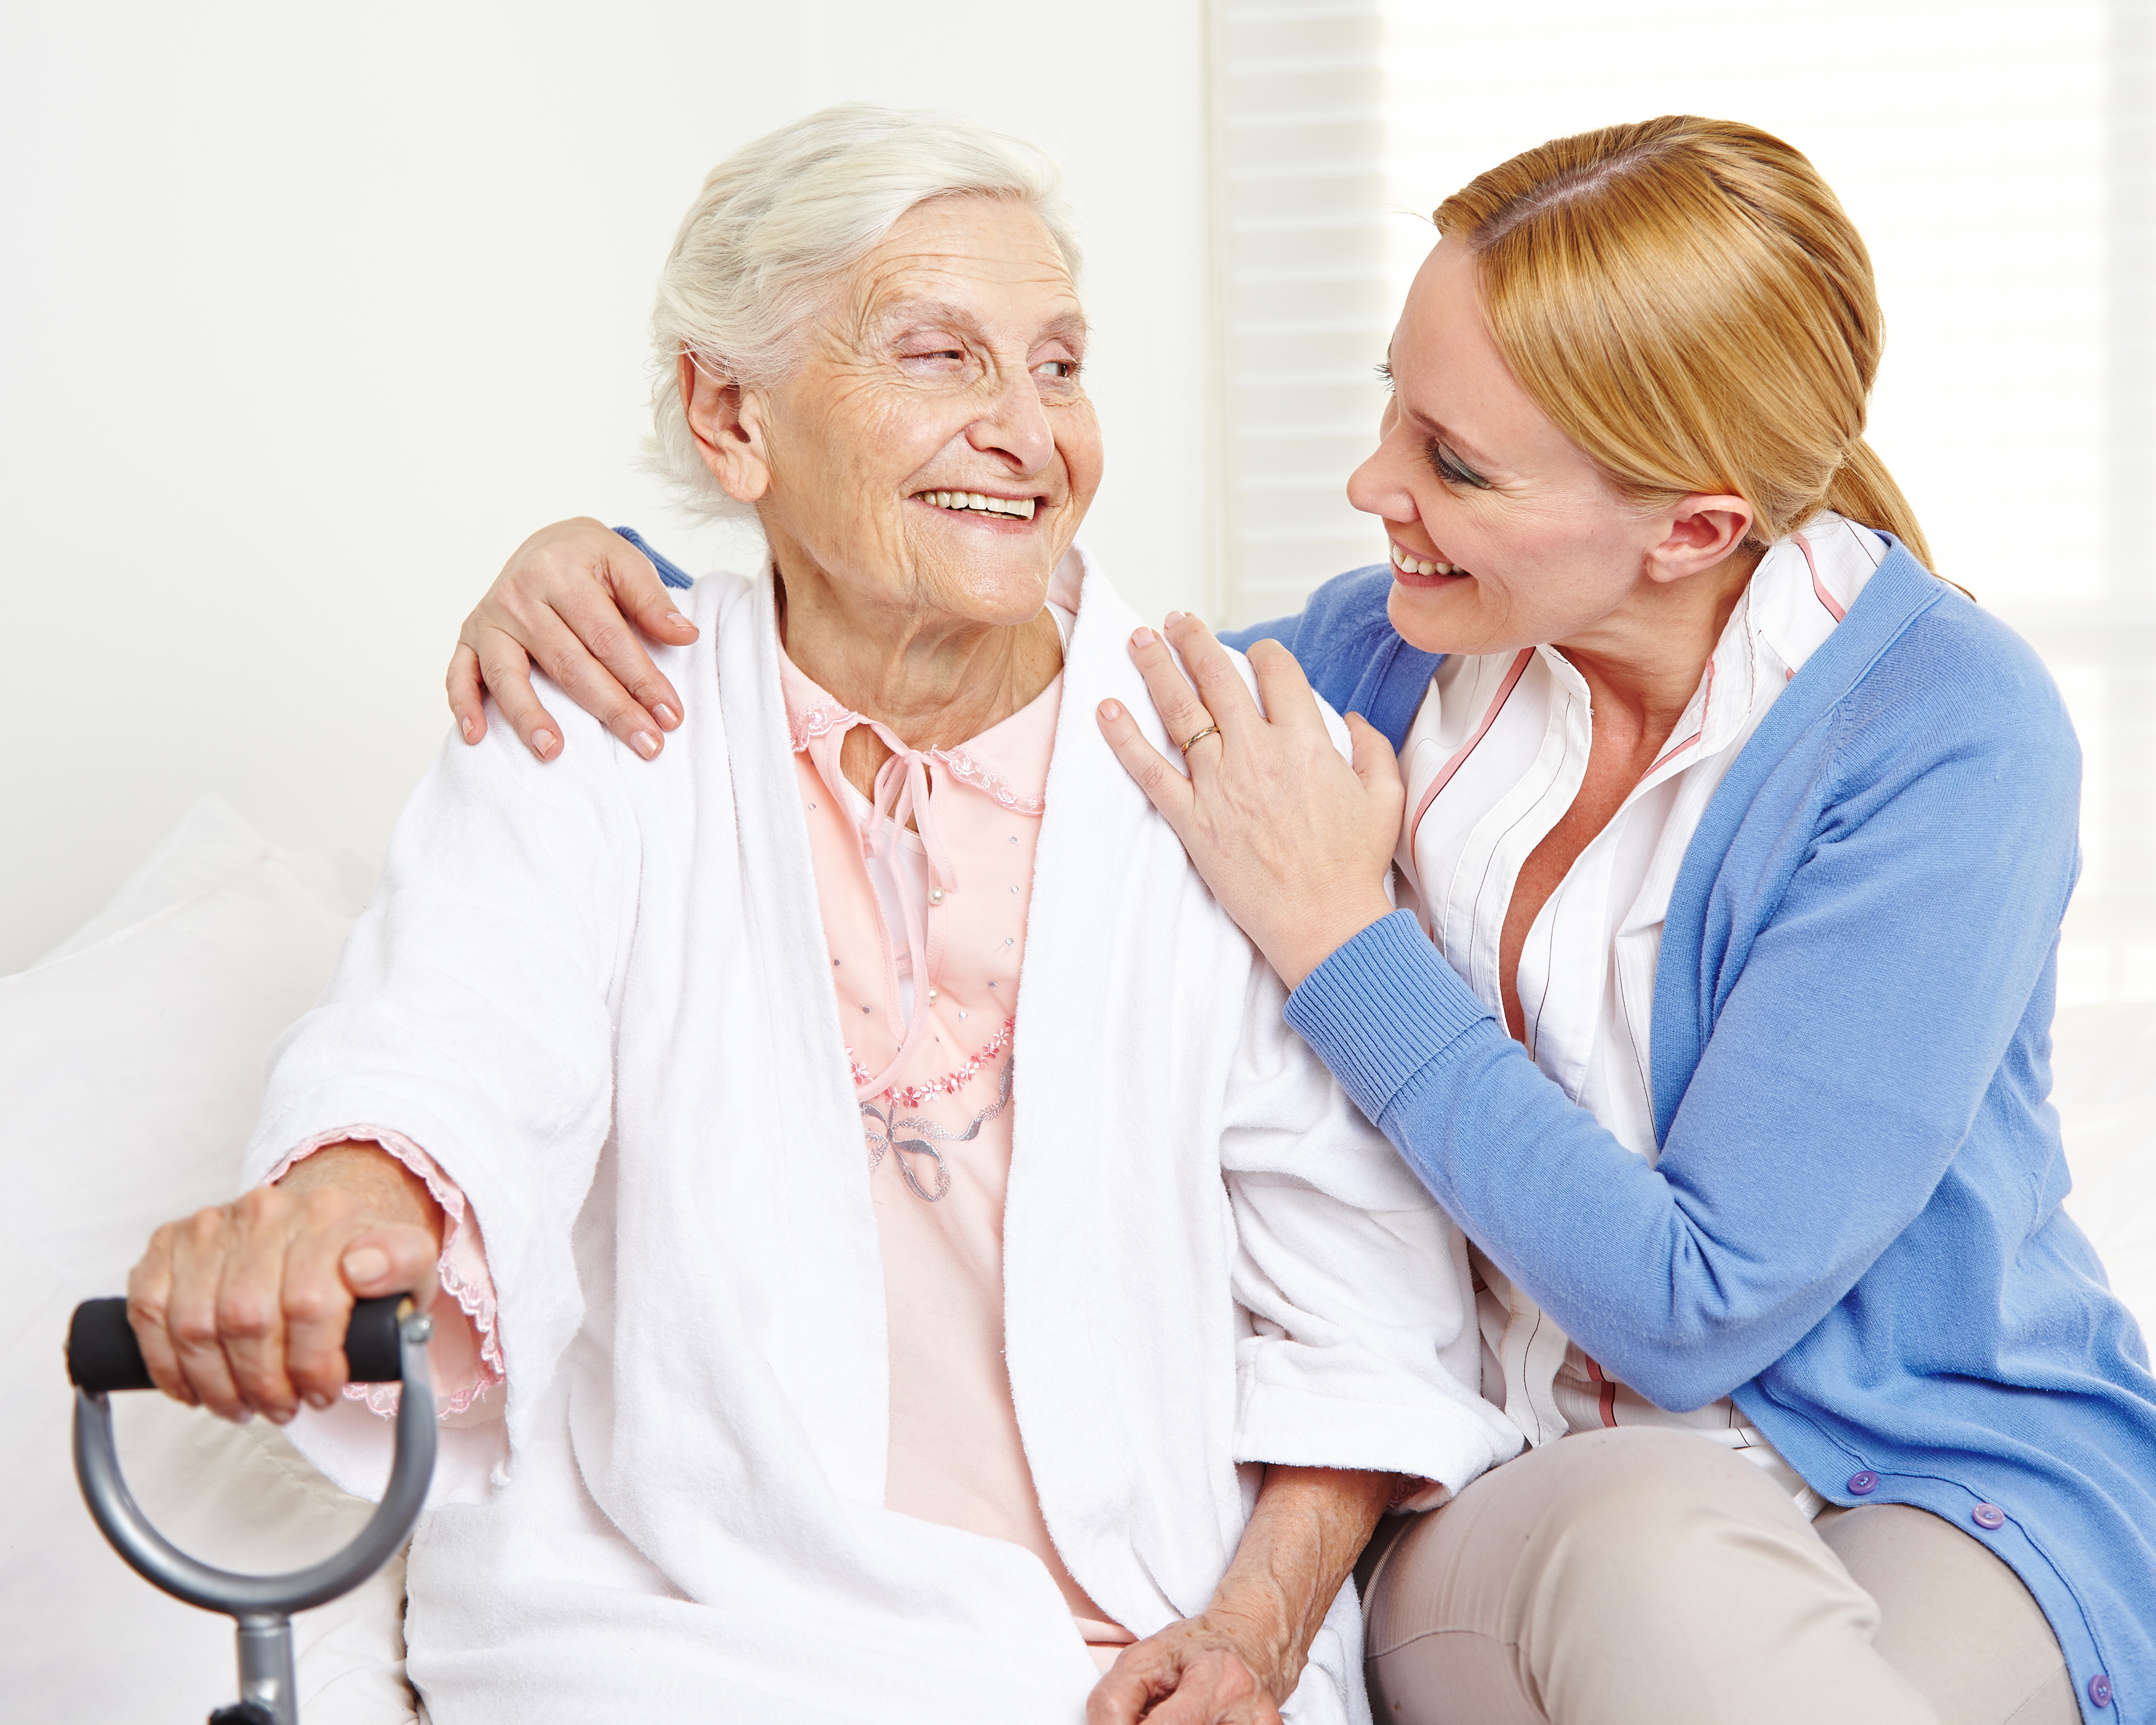 Big Opportunity for Case Management: Aged care and NDIS approaches